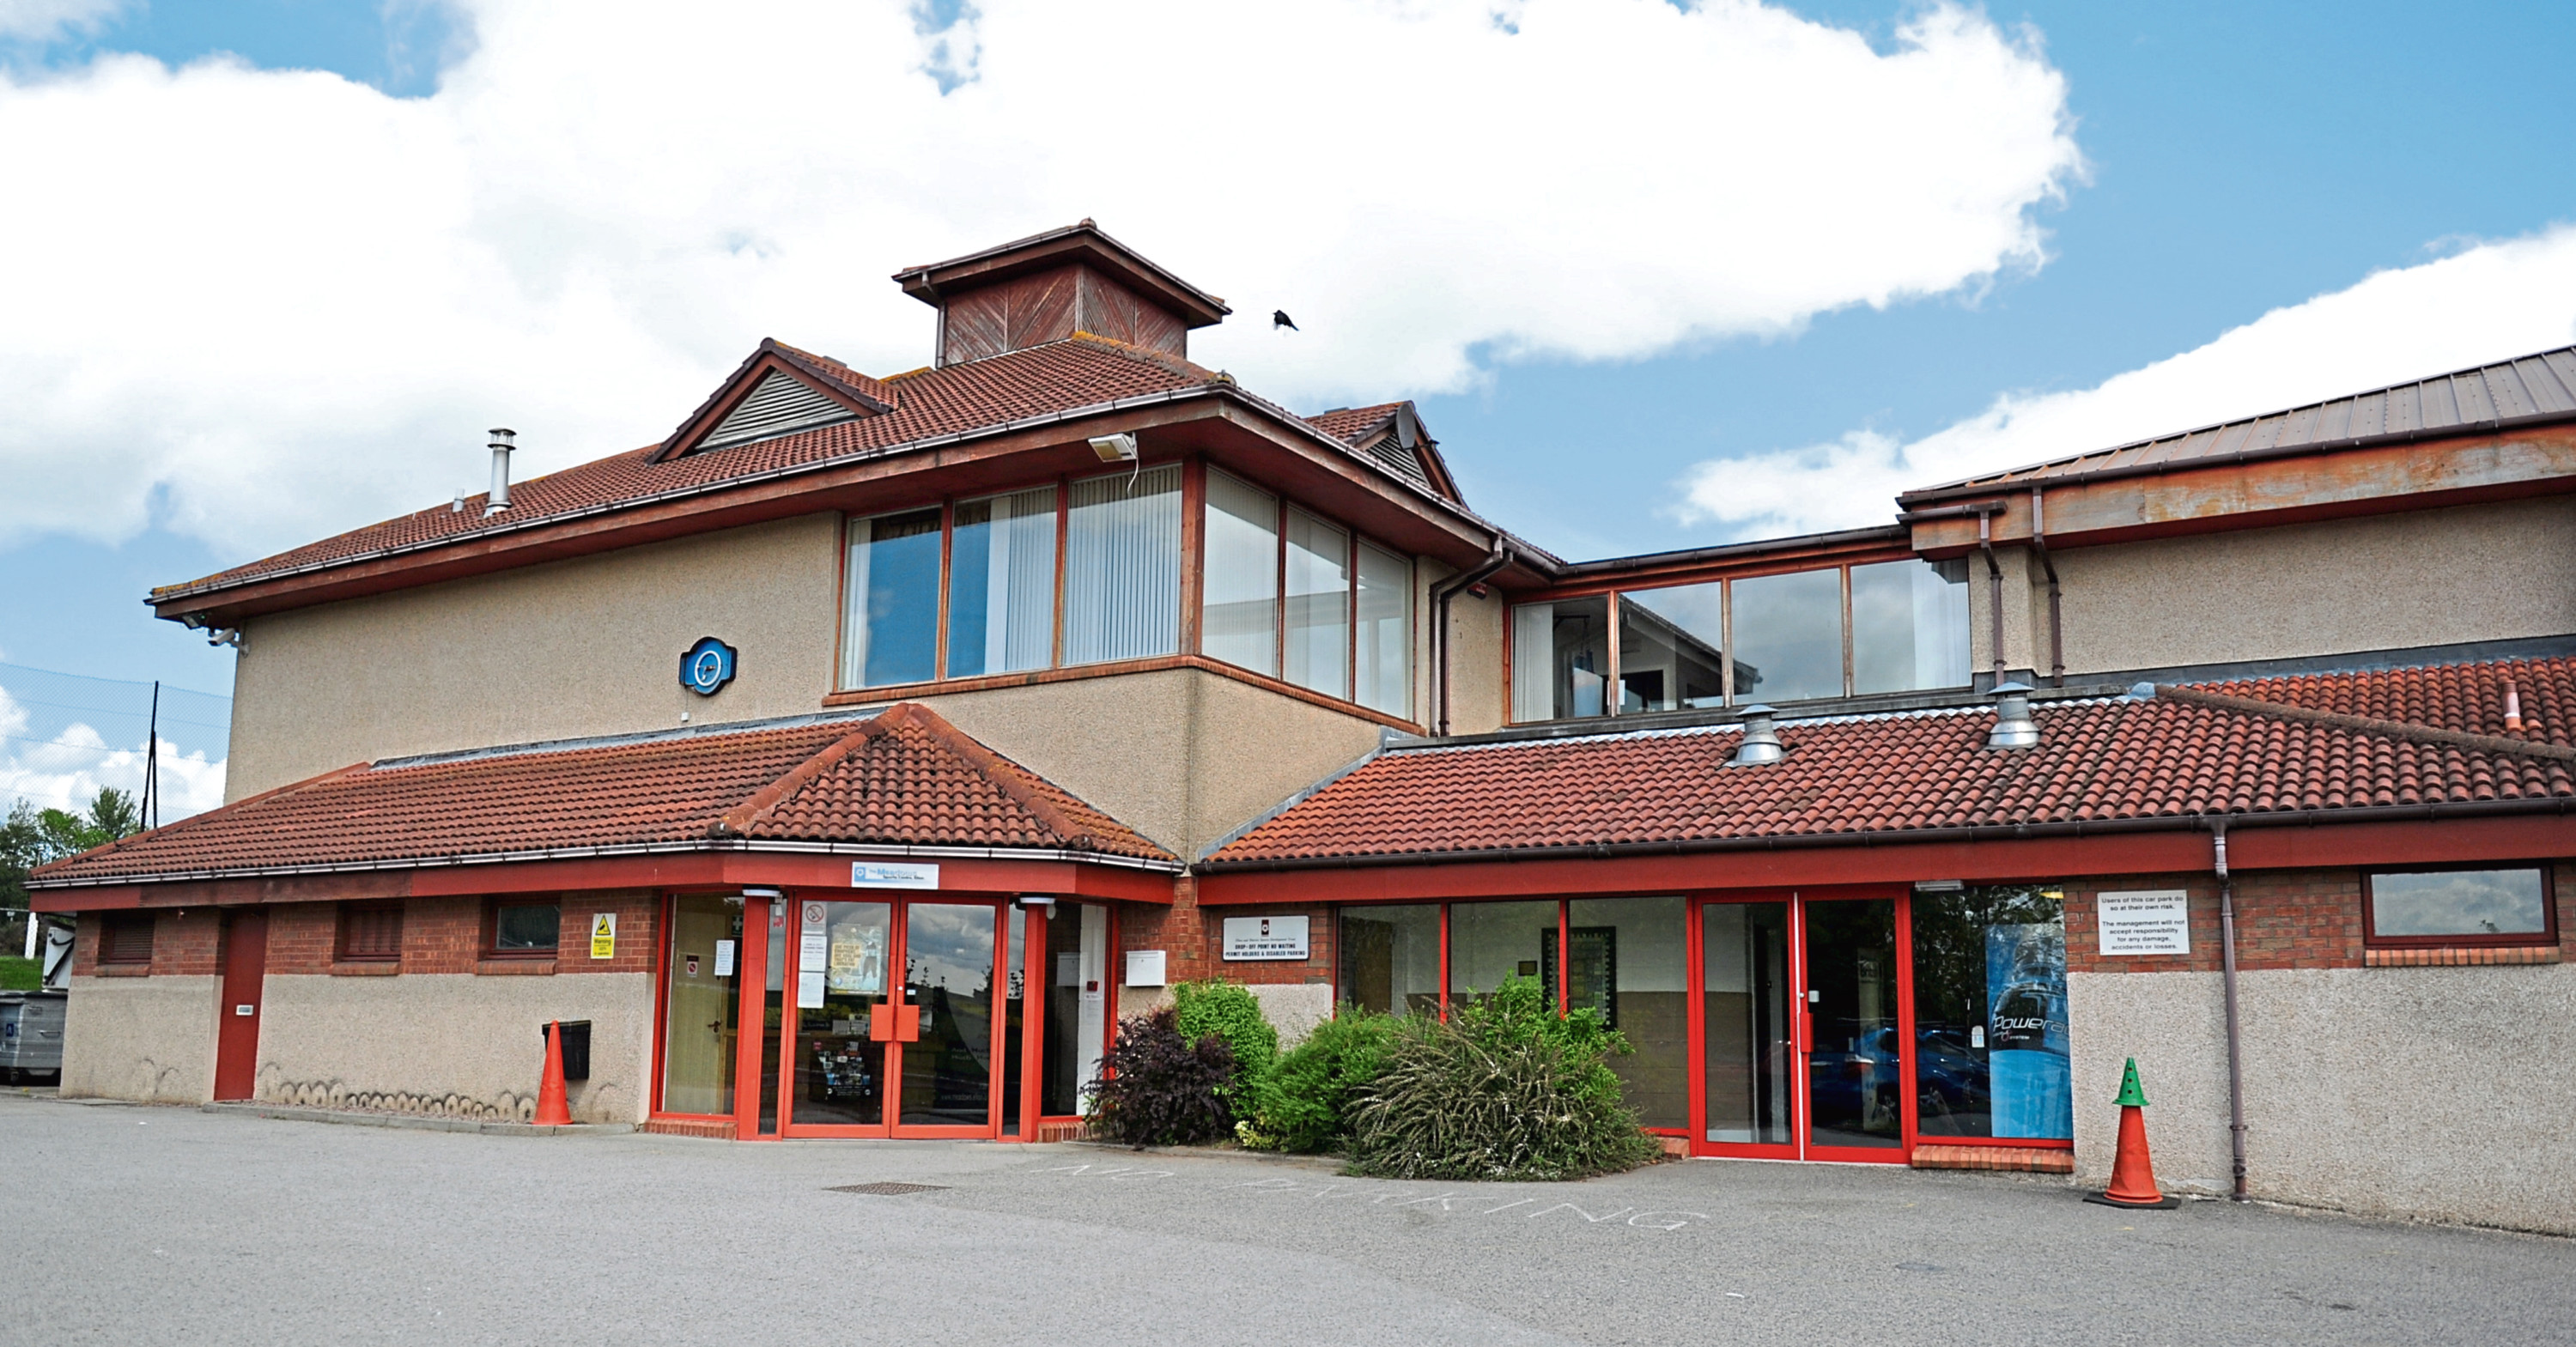 Funding is hoped to be granted to refurbish the staffing desk at The Meadows Sports Centre in Ellon